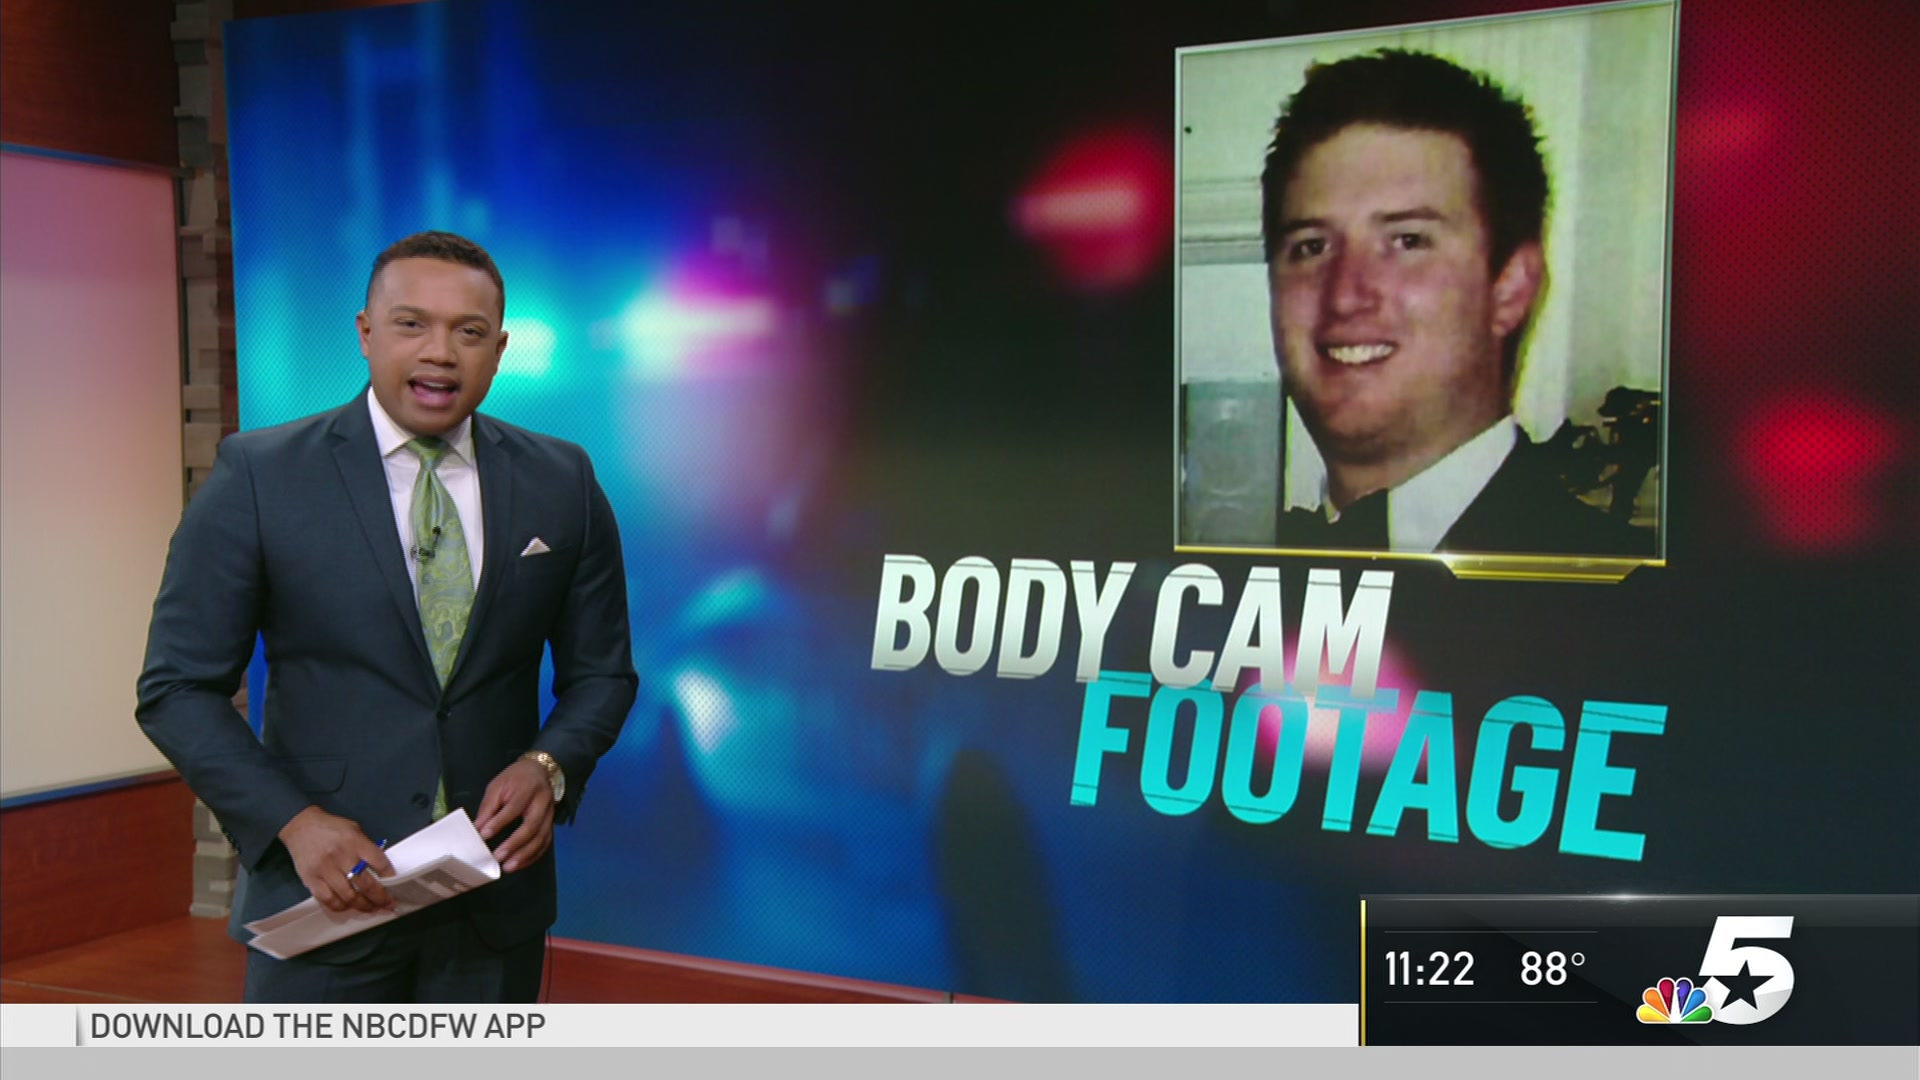 You're gonna kill me!': Dallas police body cam footage